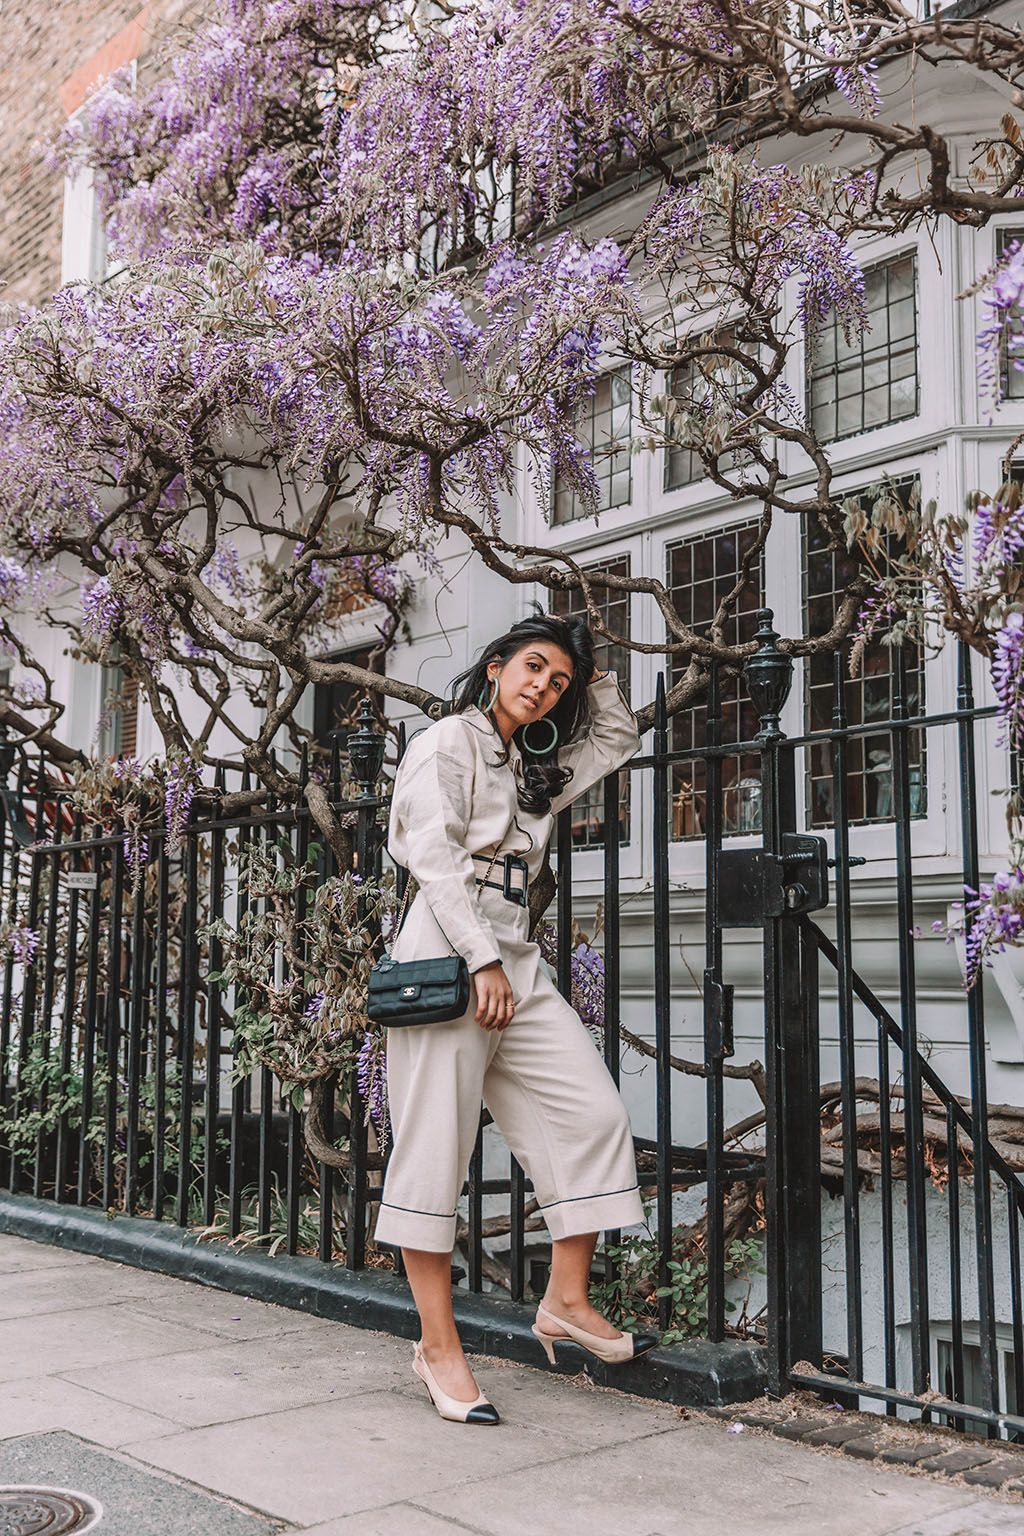 8bb98298b Fashion blogger Shloka Narang of The Silk Sneaker shares a new summer outfit  styling a co-ord linen set to create the perfect outfit featuring Chanel  and ...